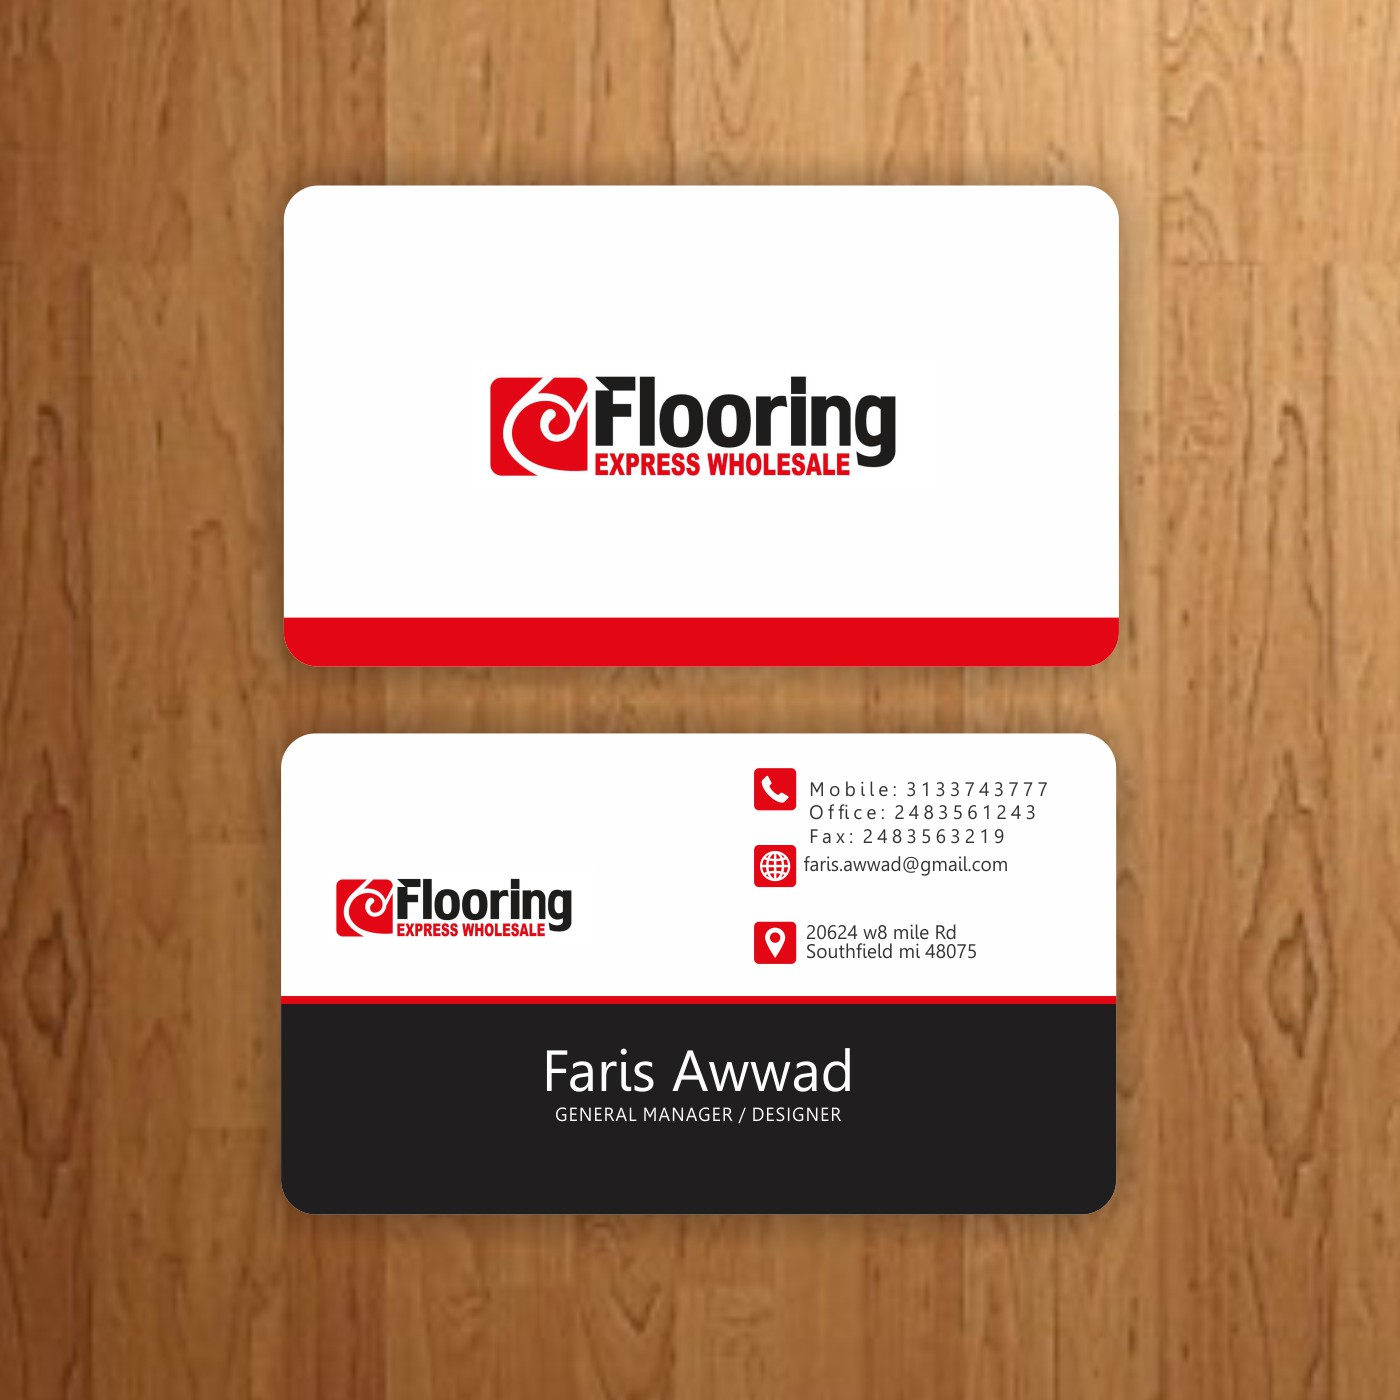 Professional serious flooring business card design for a company business card design by peacockdesigns for this project design 12796139 reheart Image collections